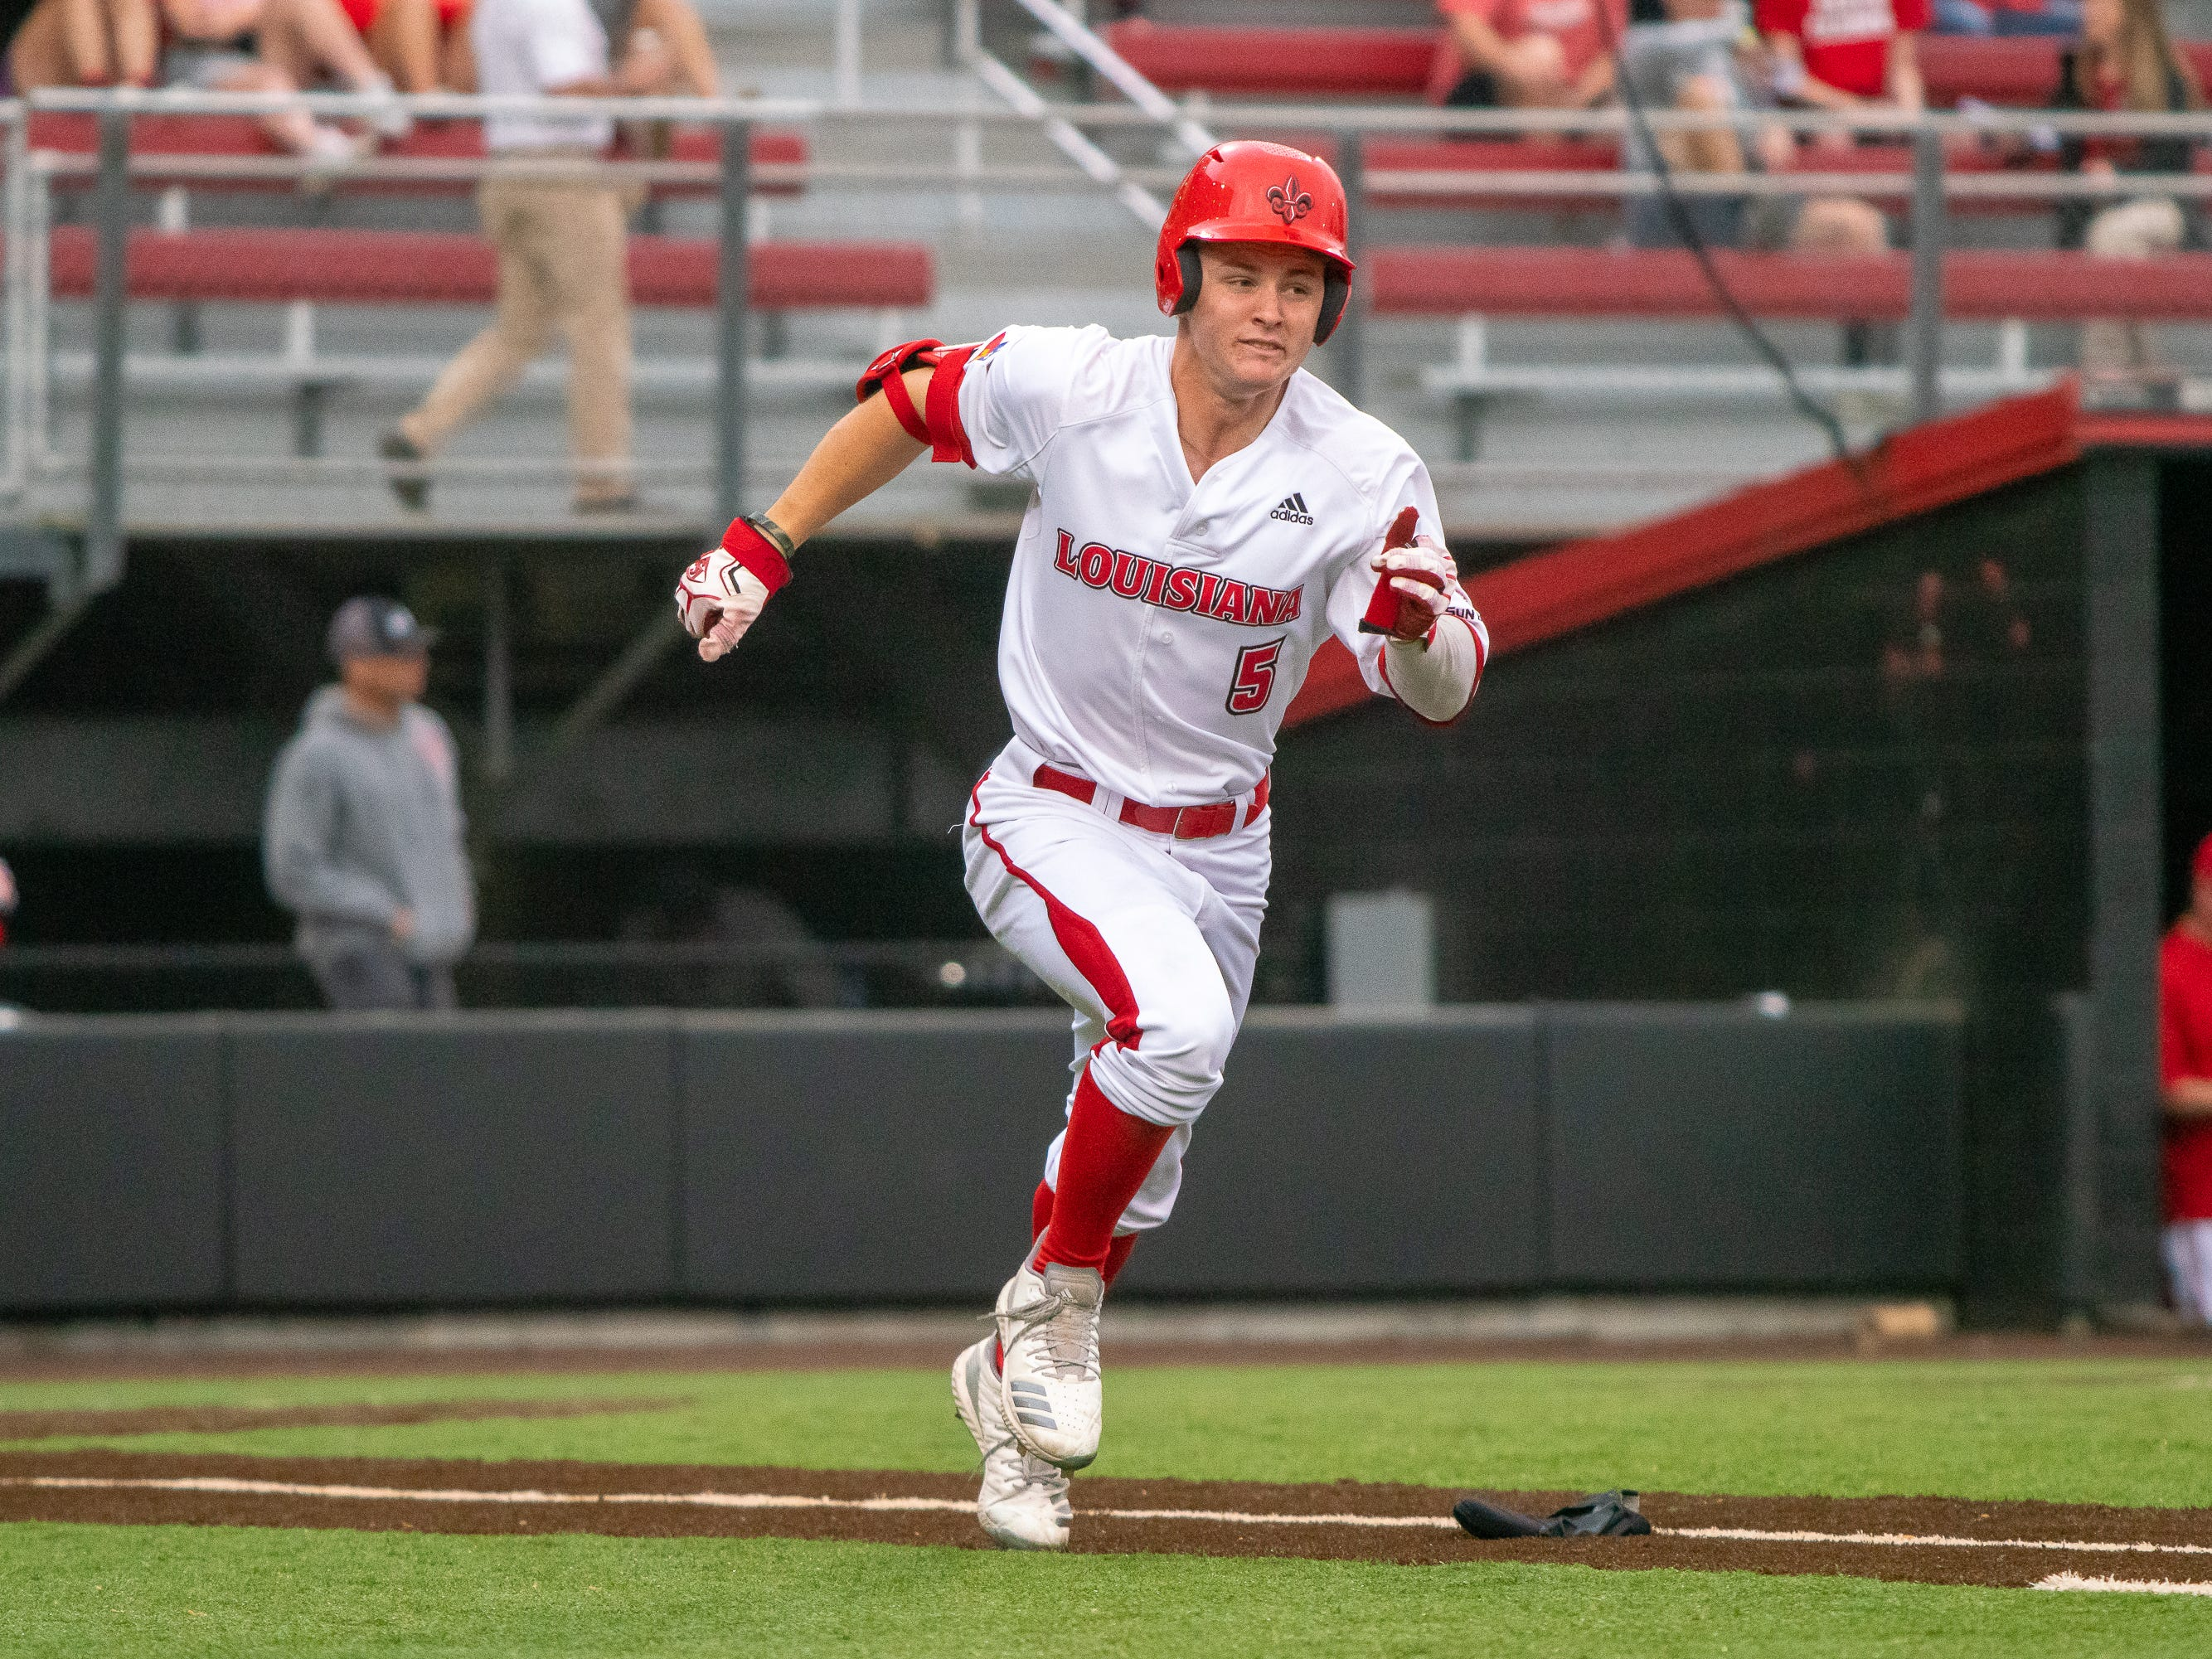 """UL's Hayden Cantrelle rushes to first base as the Ragin' Cajuns take on the Southern Miss Golden Eagles at M.L. """"Tigue"""" Moore Field on Wednesday, March 13, 2019."""